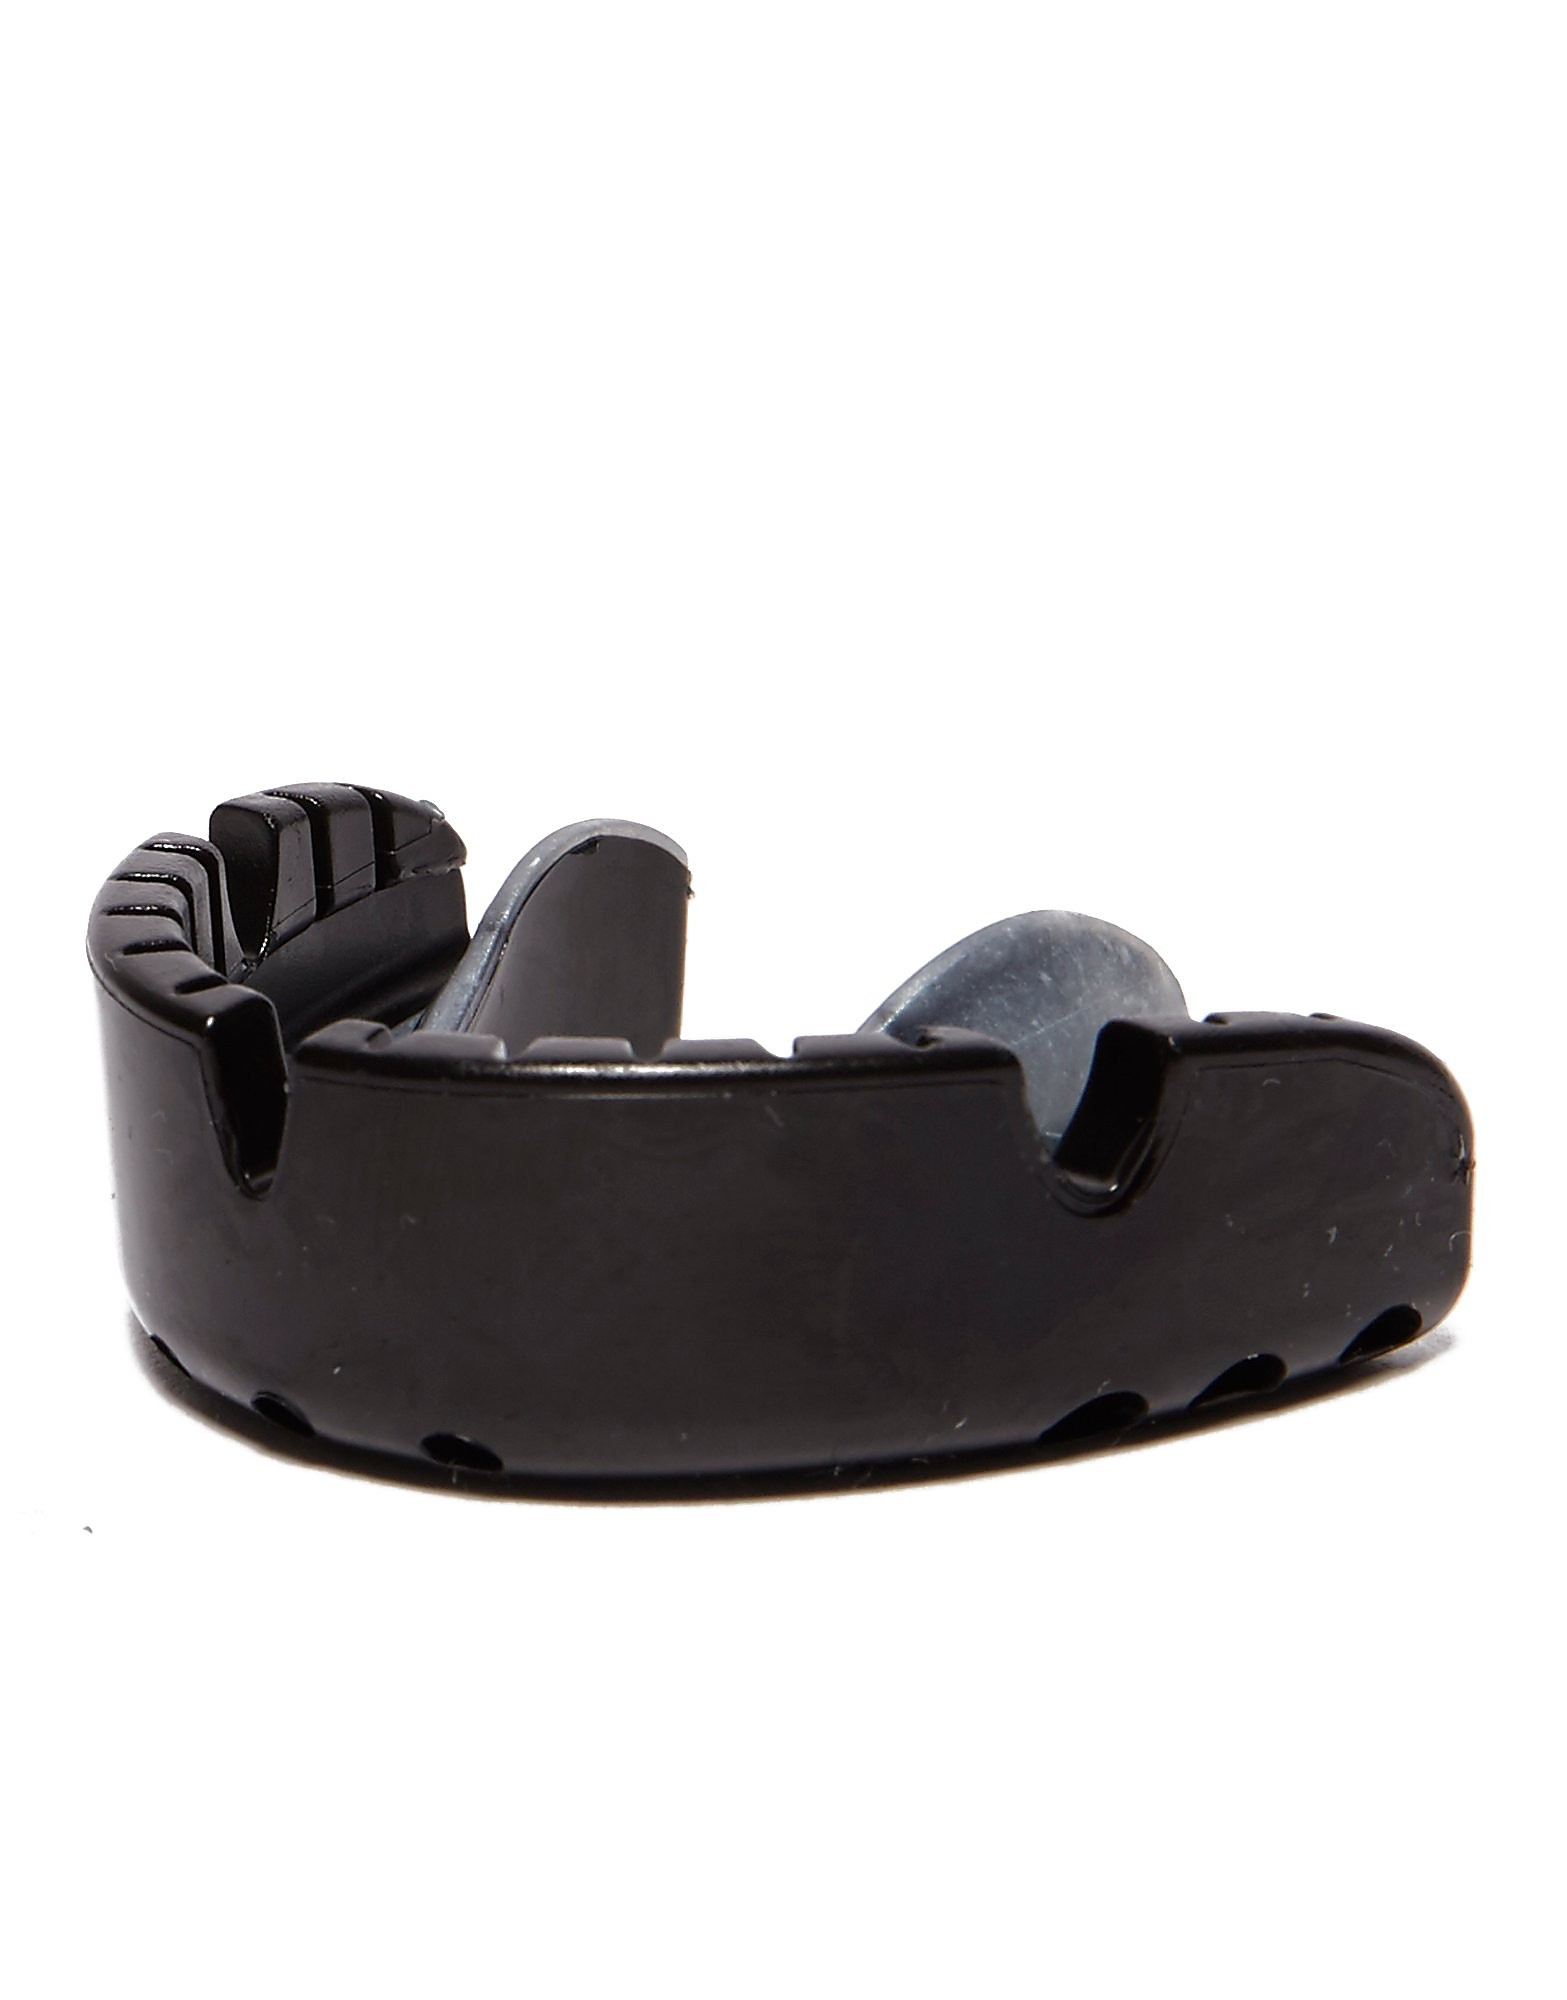 Opro Gold Braces Mouthguard